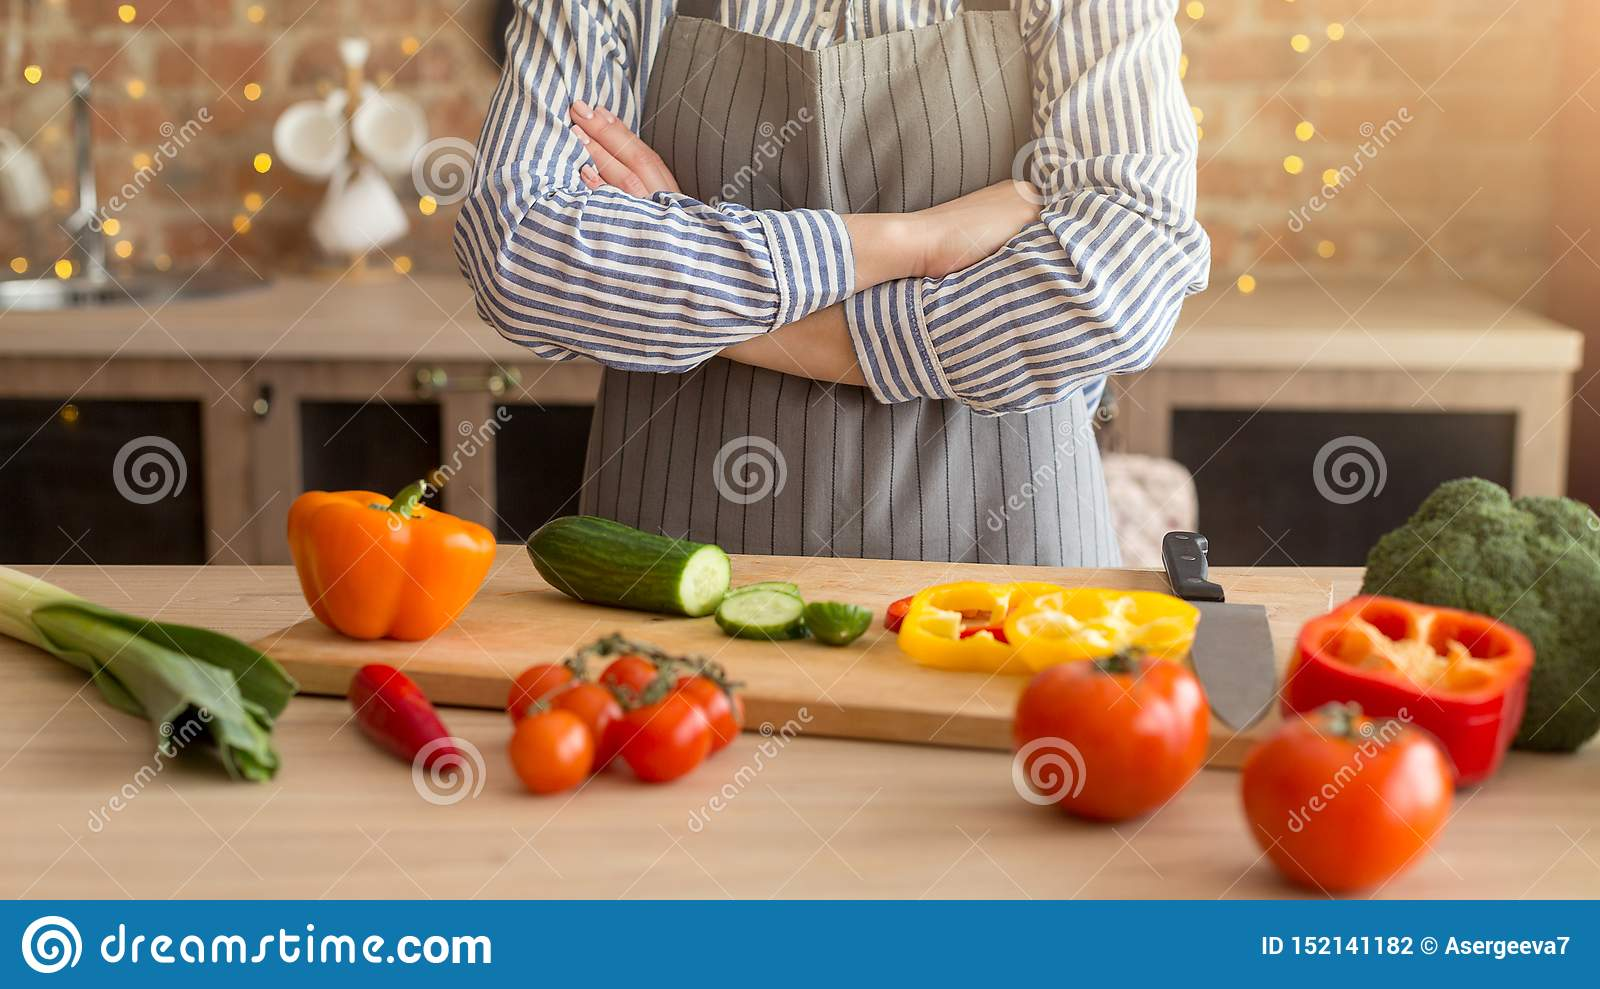 Cooking salad with vegetables. Young woman hands